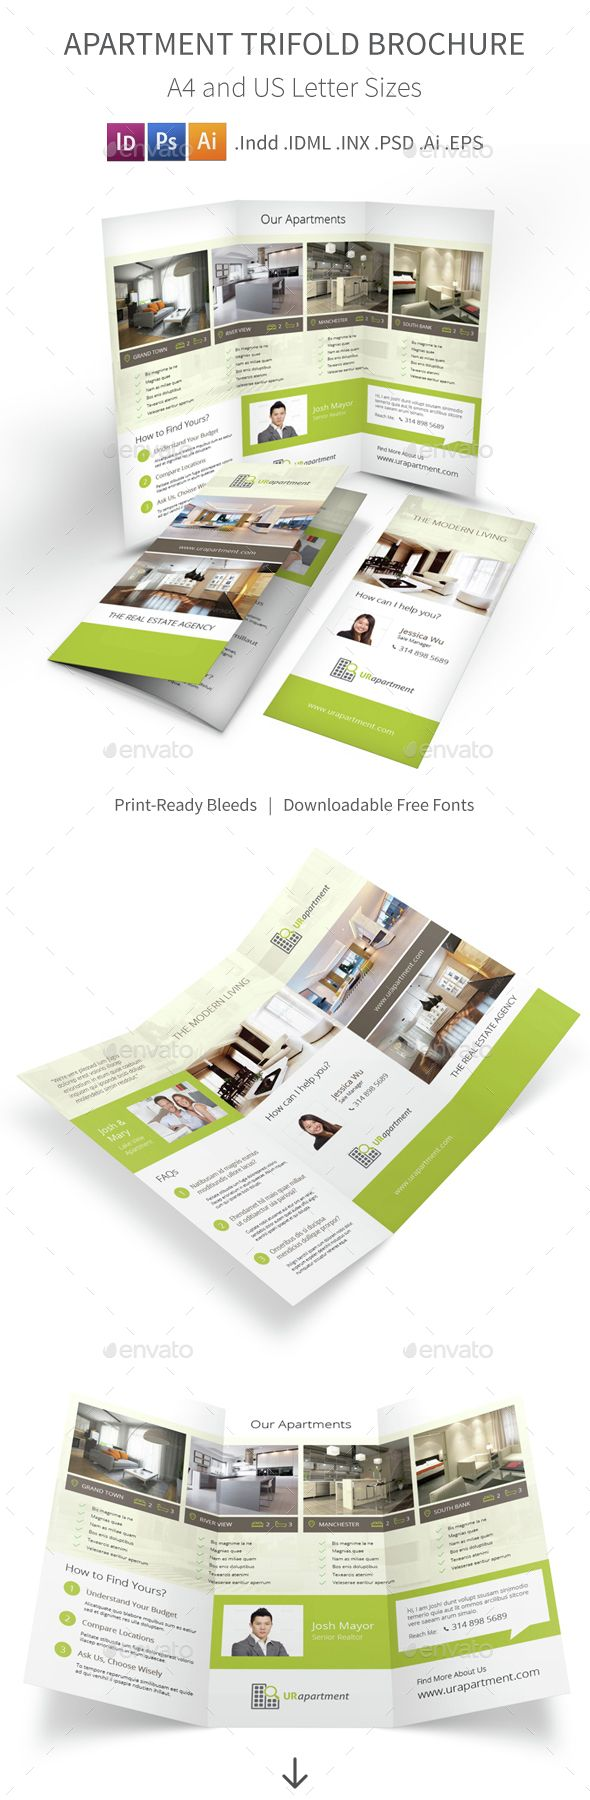 Apartment Brochure Design Classy Design Ideas